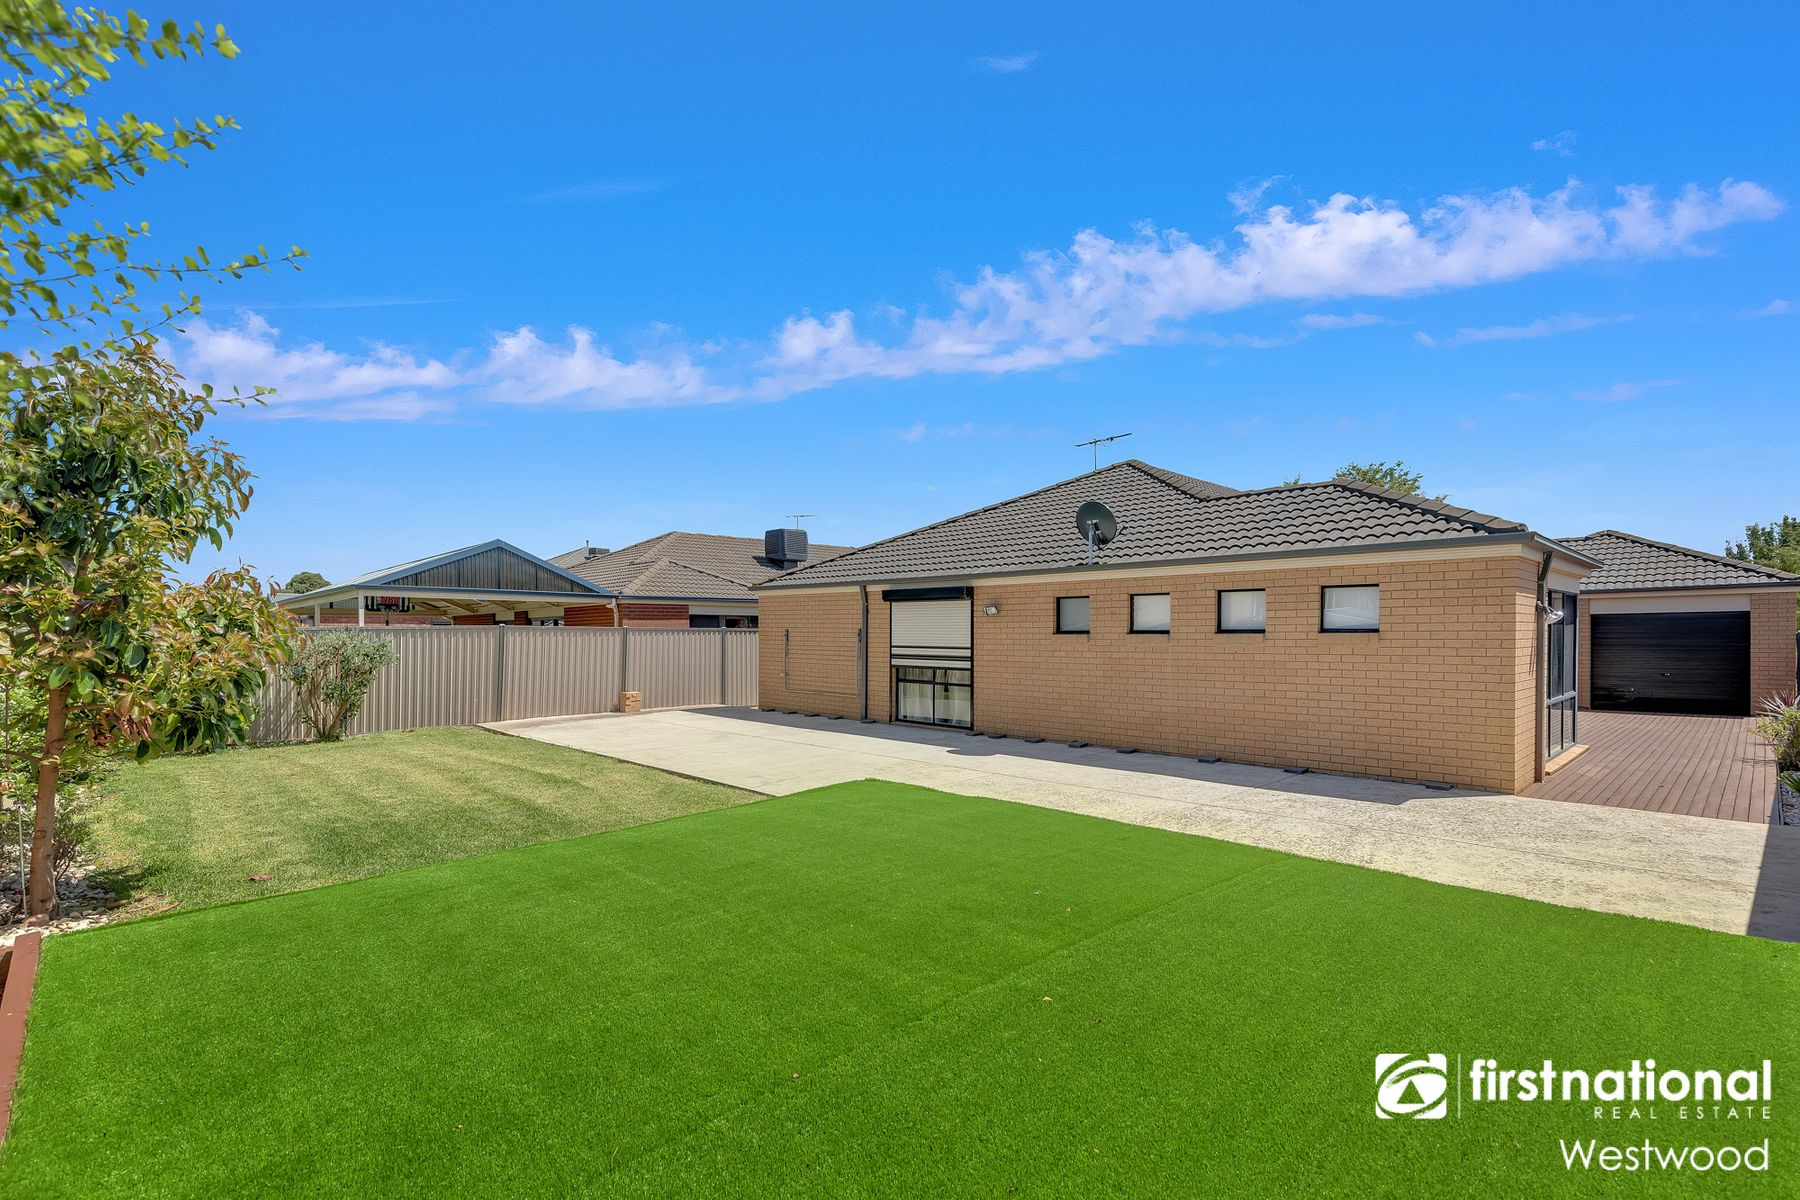 41 Chesterton Avenue, Tarneit, VIC 3029